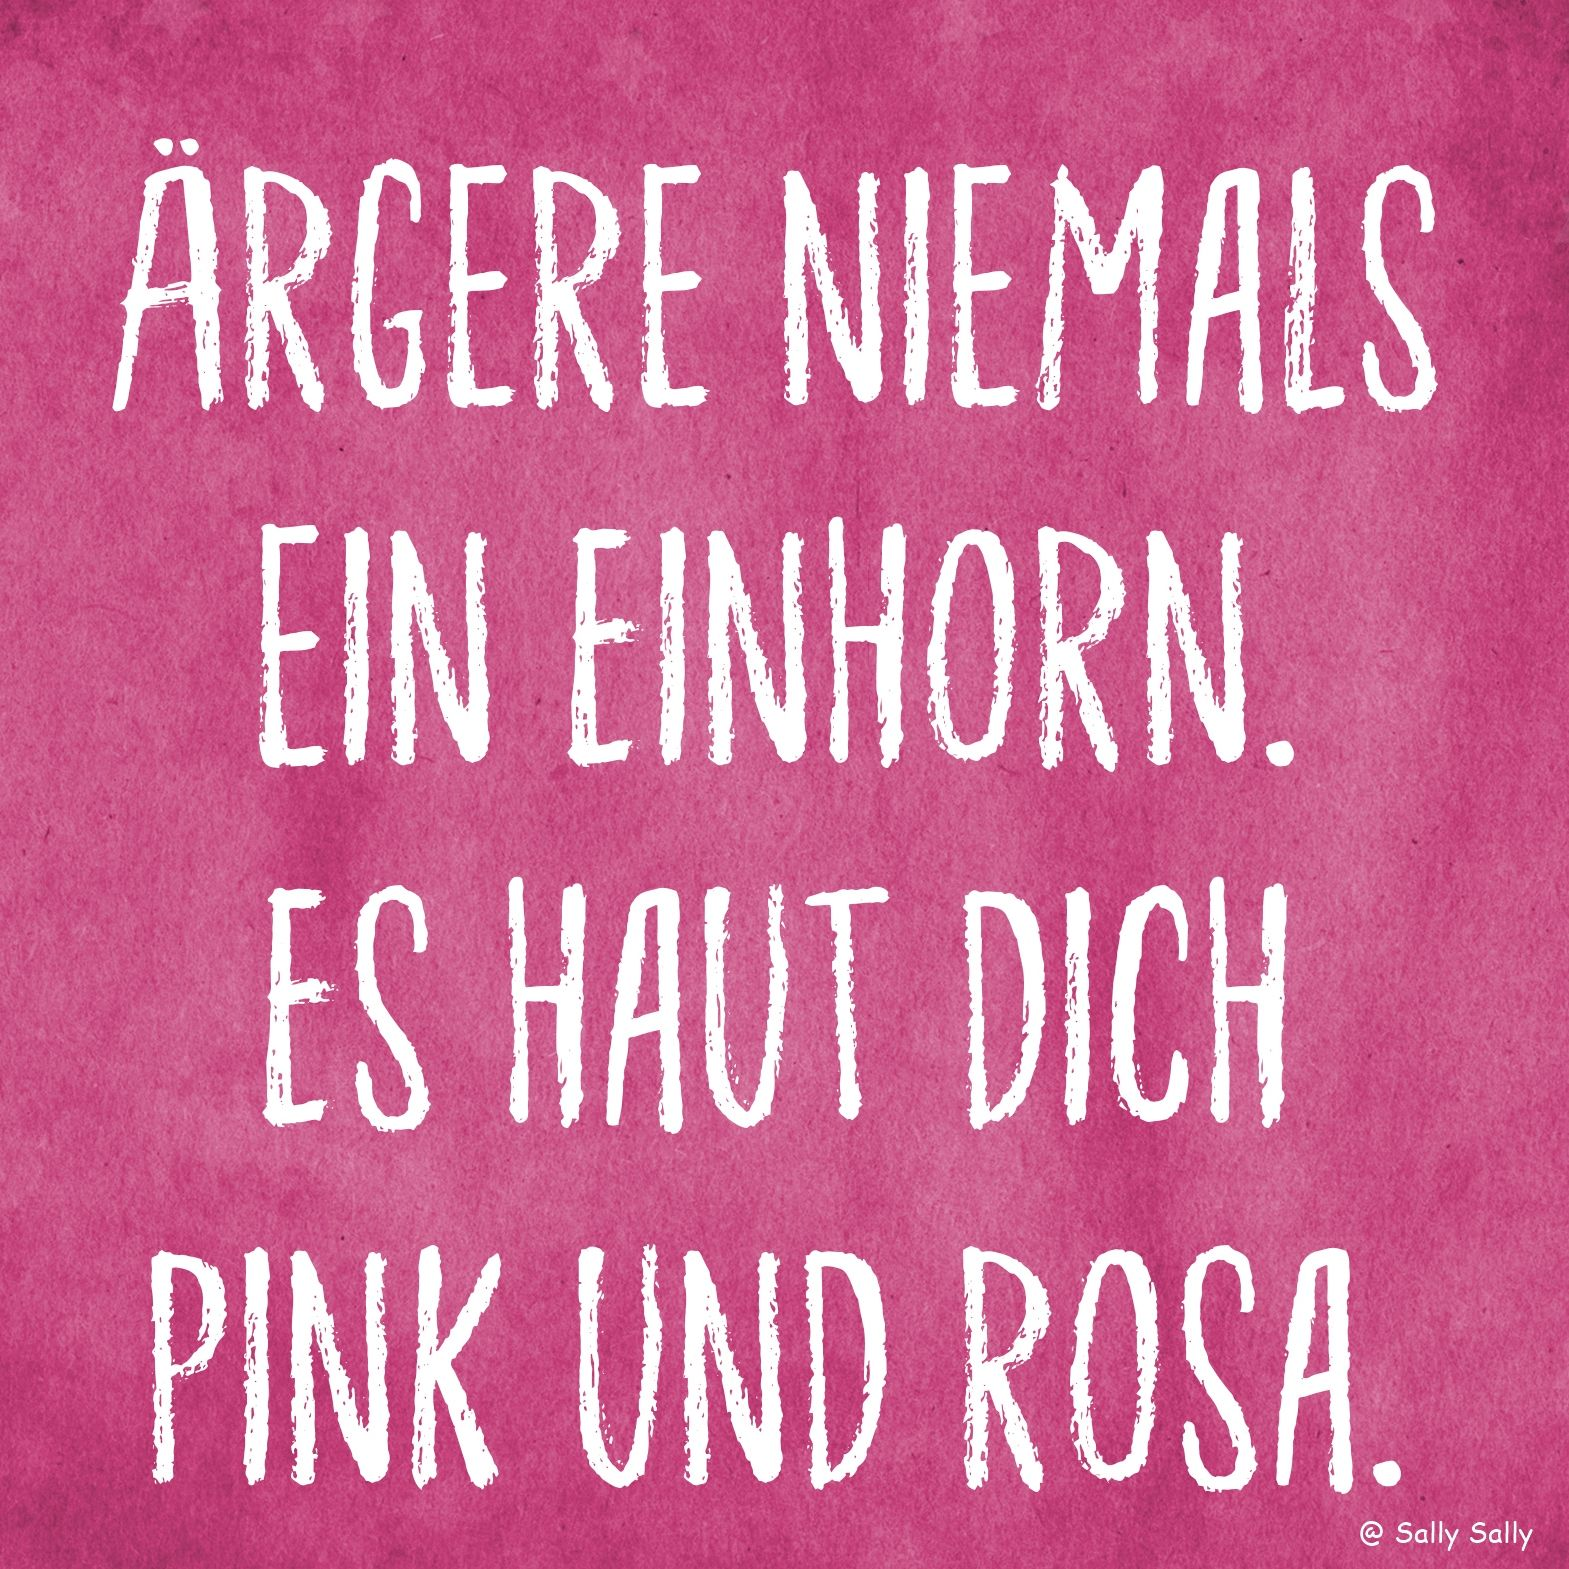 texte spr che quotes memes rgere niemals ein einhorn es haut dich pink und rosa. Black Bedroom Furniture Sets. Home Design Ideas